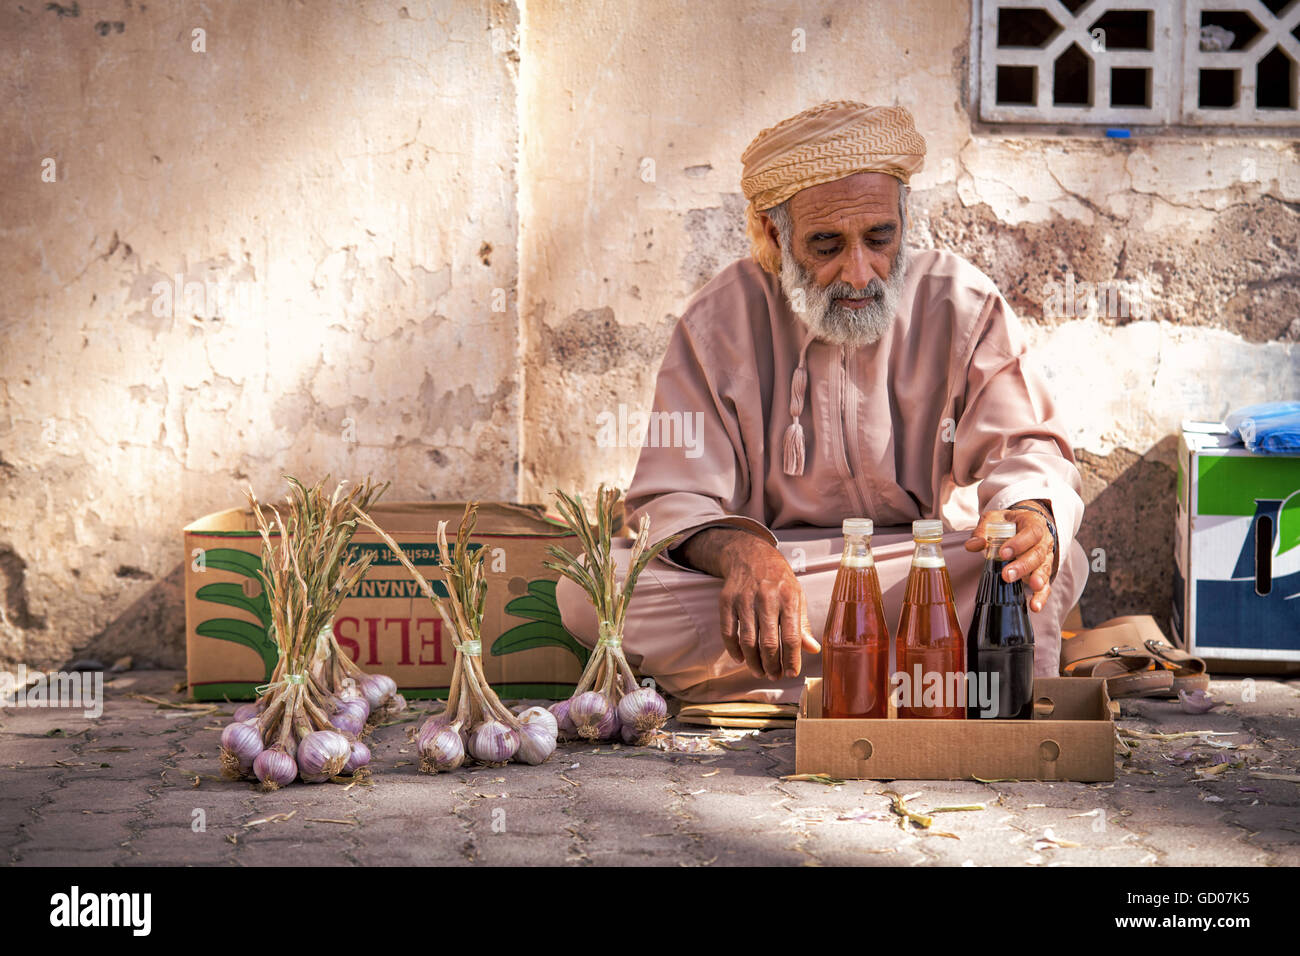 NIZWA, OMAN - APRIL 24 2015:Omani old man selling honey and garlic at the traditional market or souq in Nizwa, Oman - Stock Image